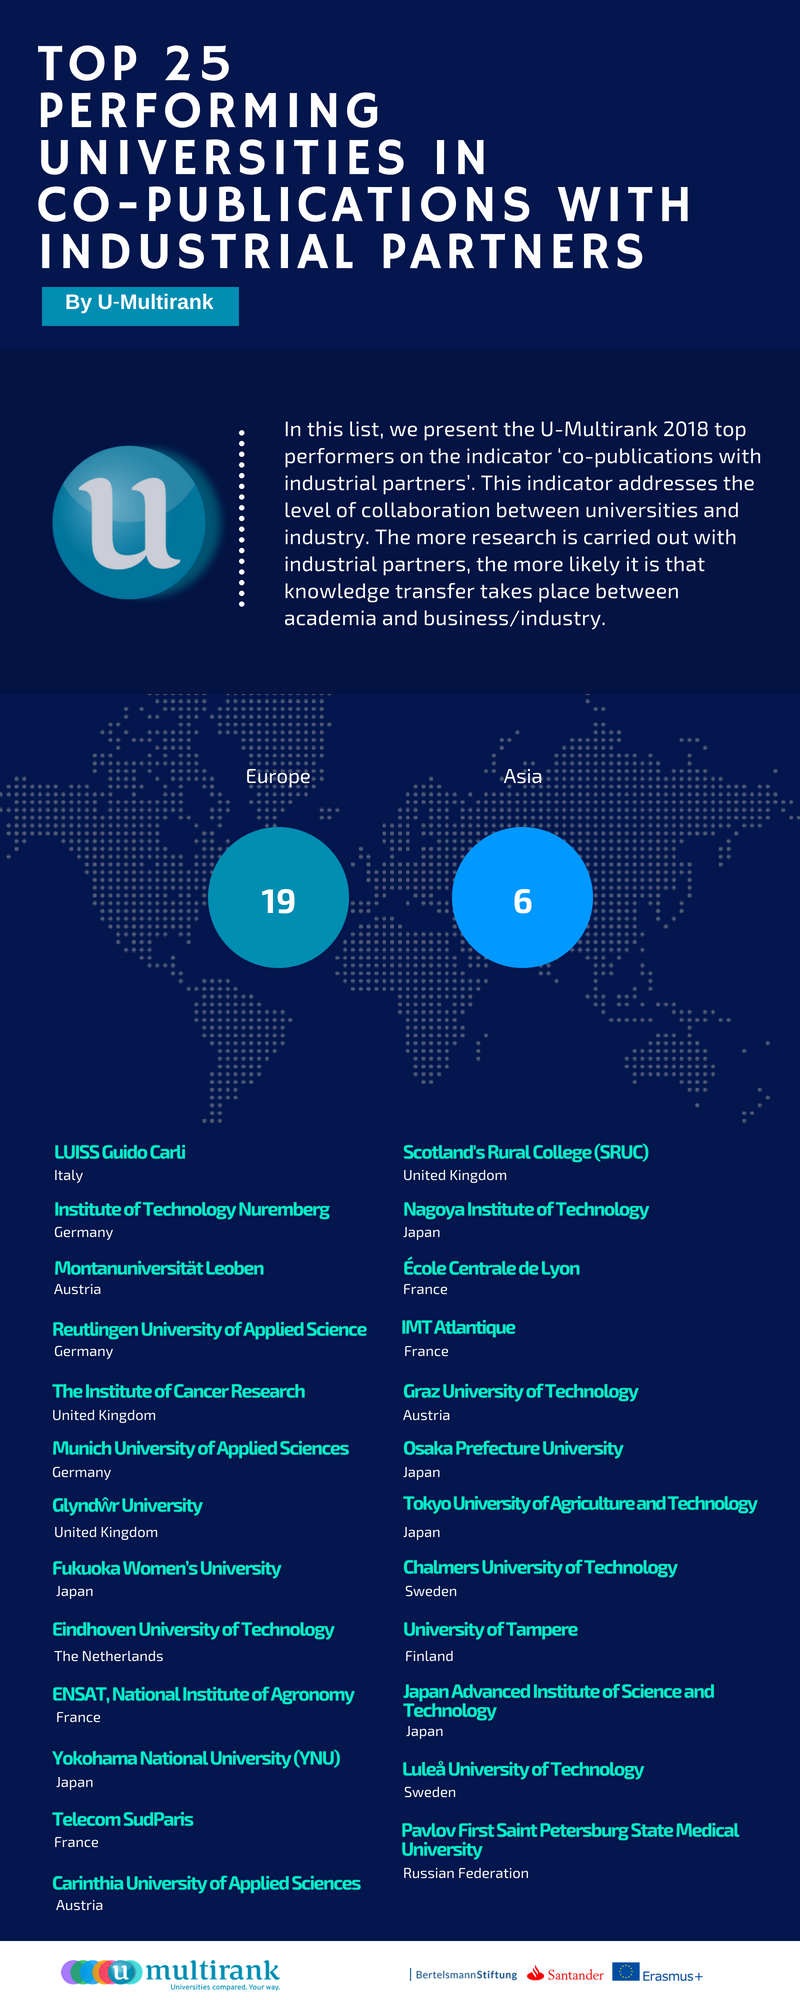 Top 25 universities in co-publications with industrial partners